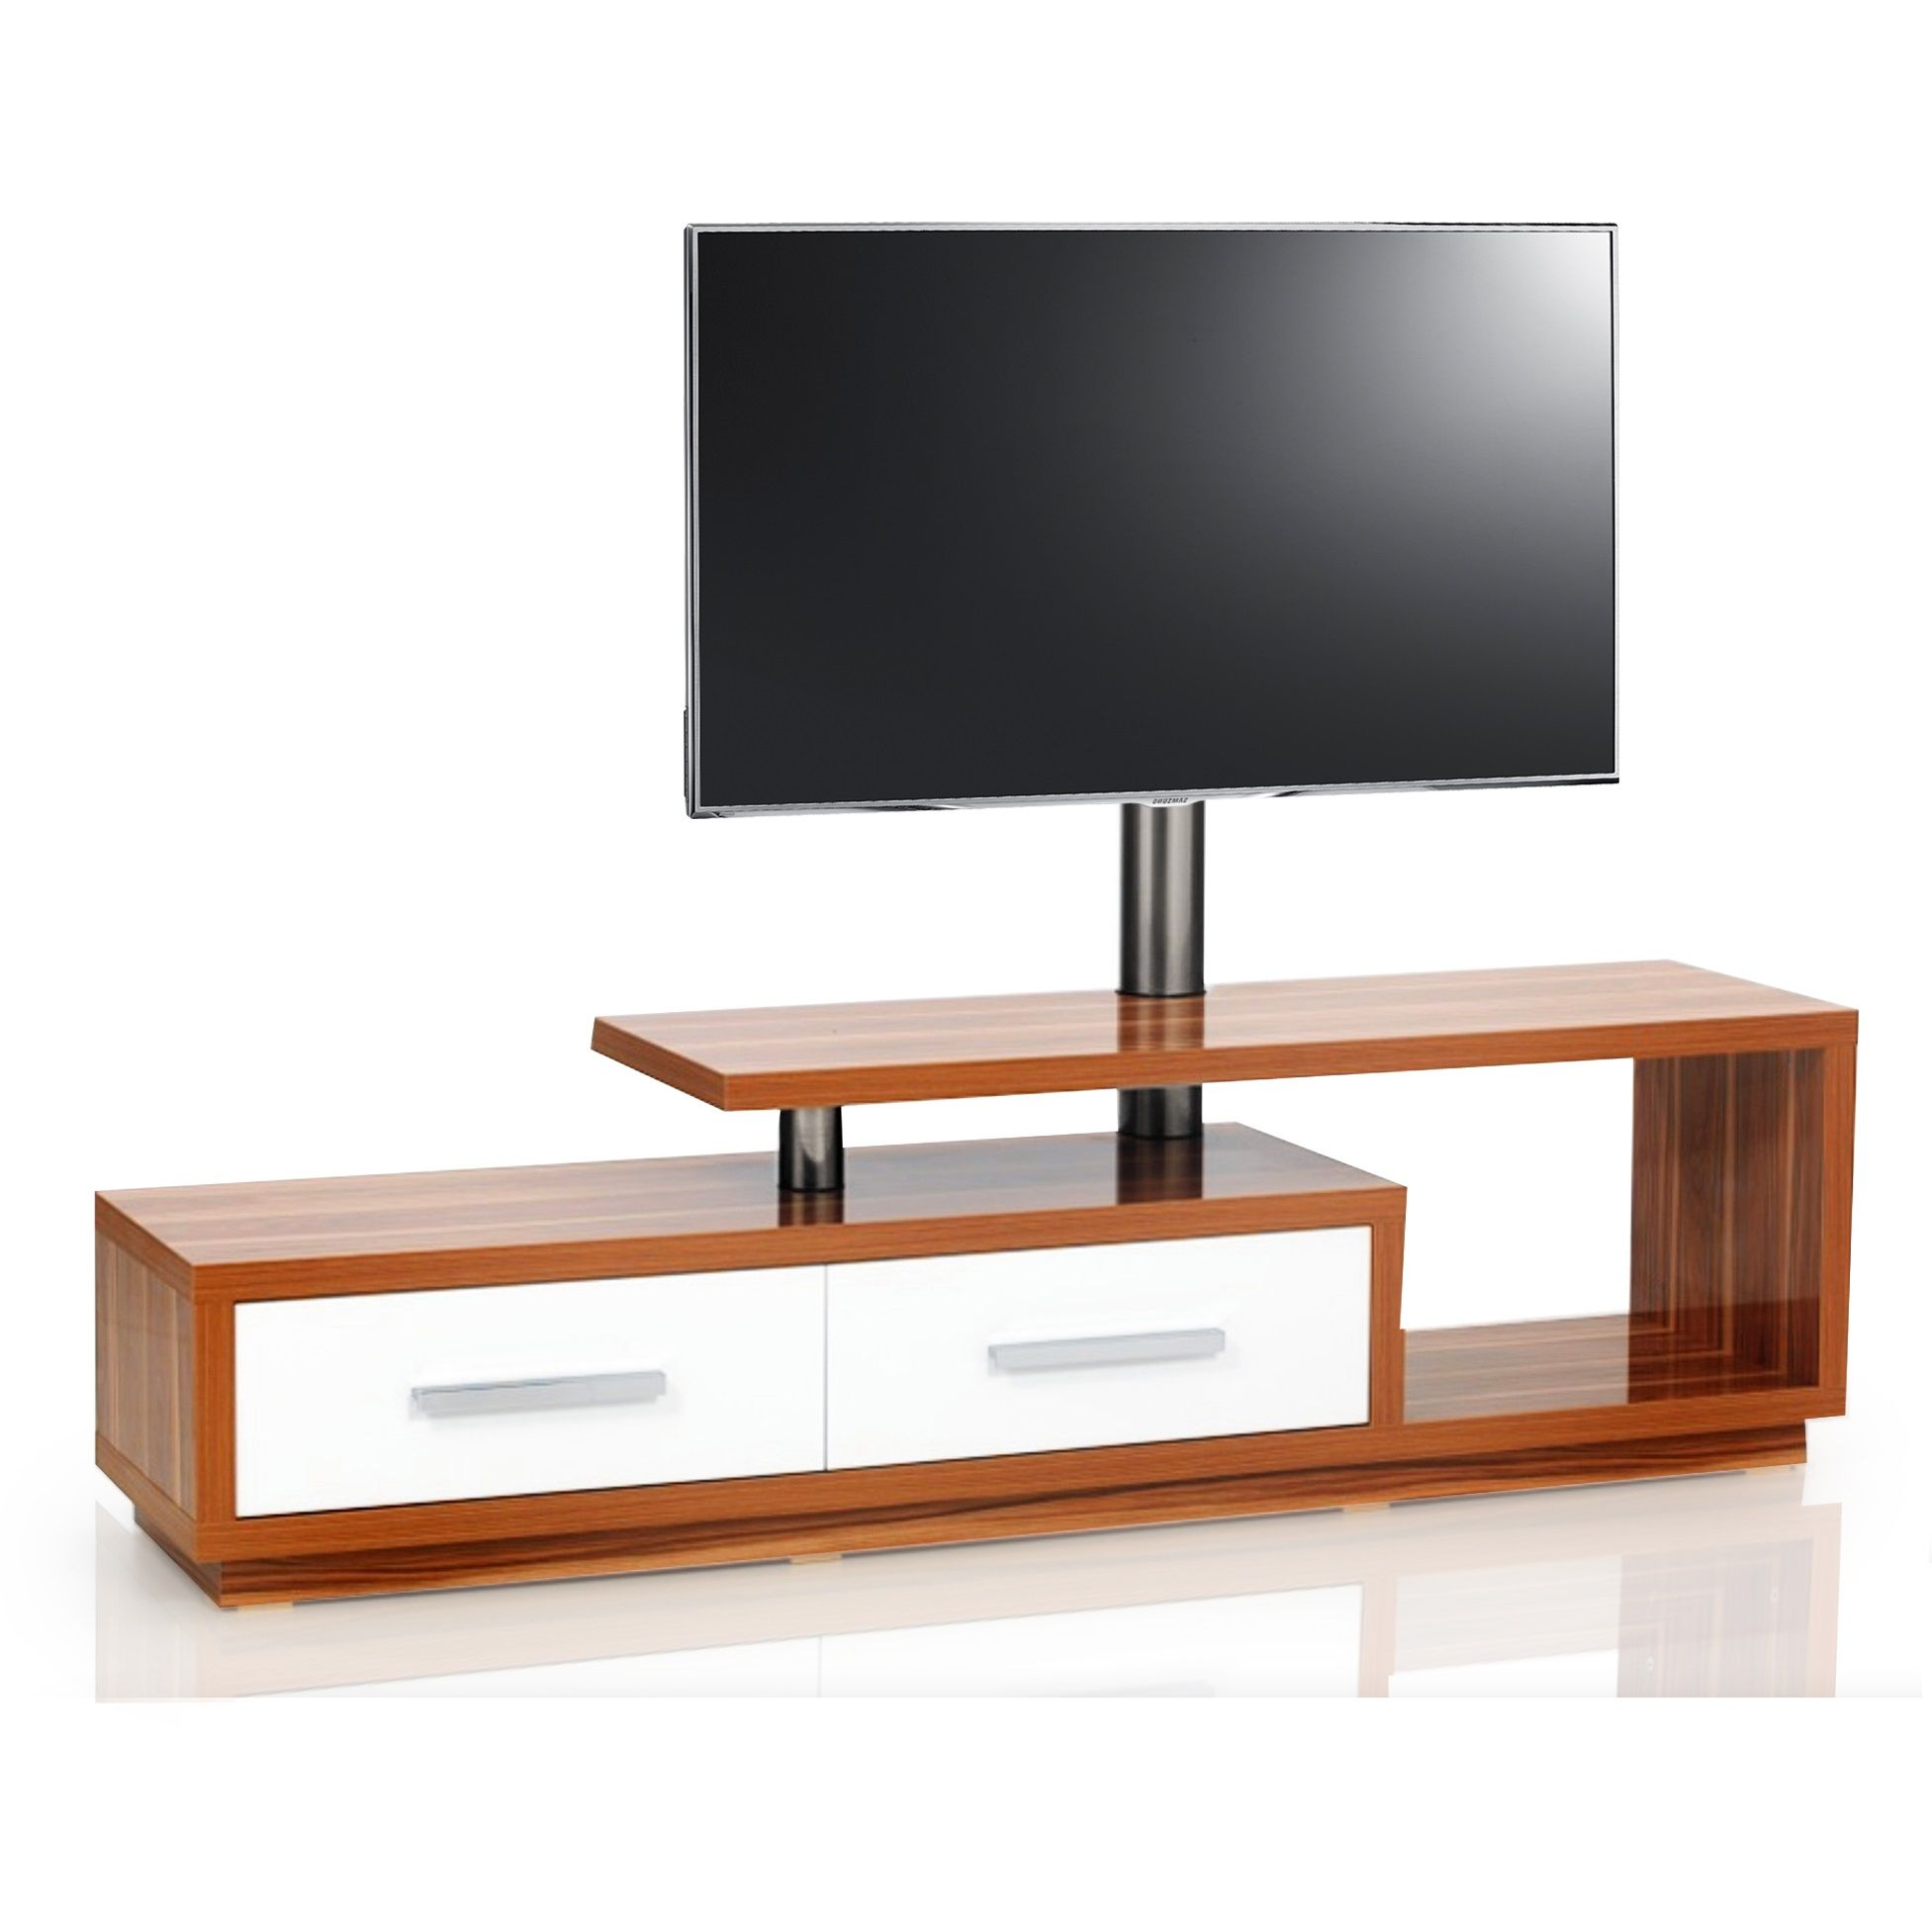 Stunning Tables De Television Contemporary Joshkrajcik Us  # Table Pour Tv Lcd En Bois